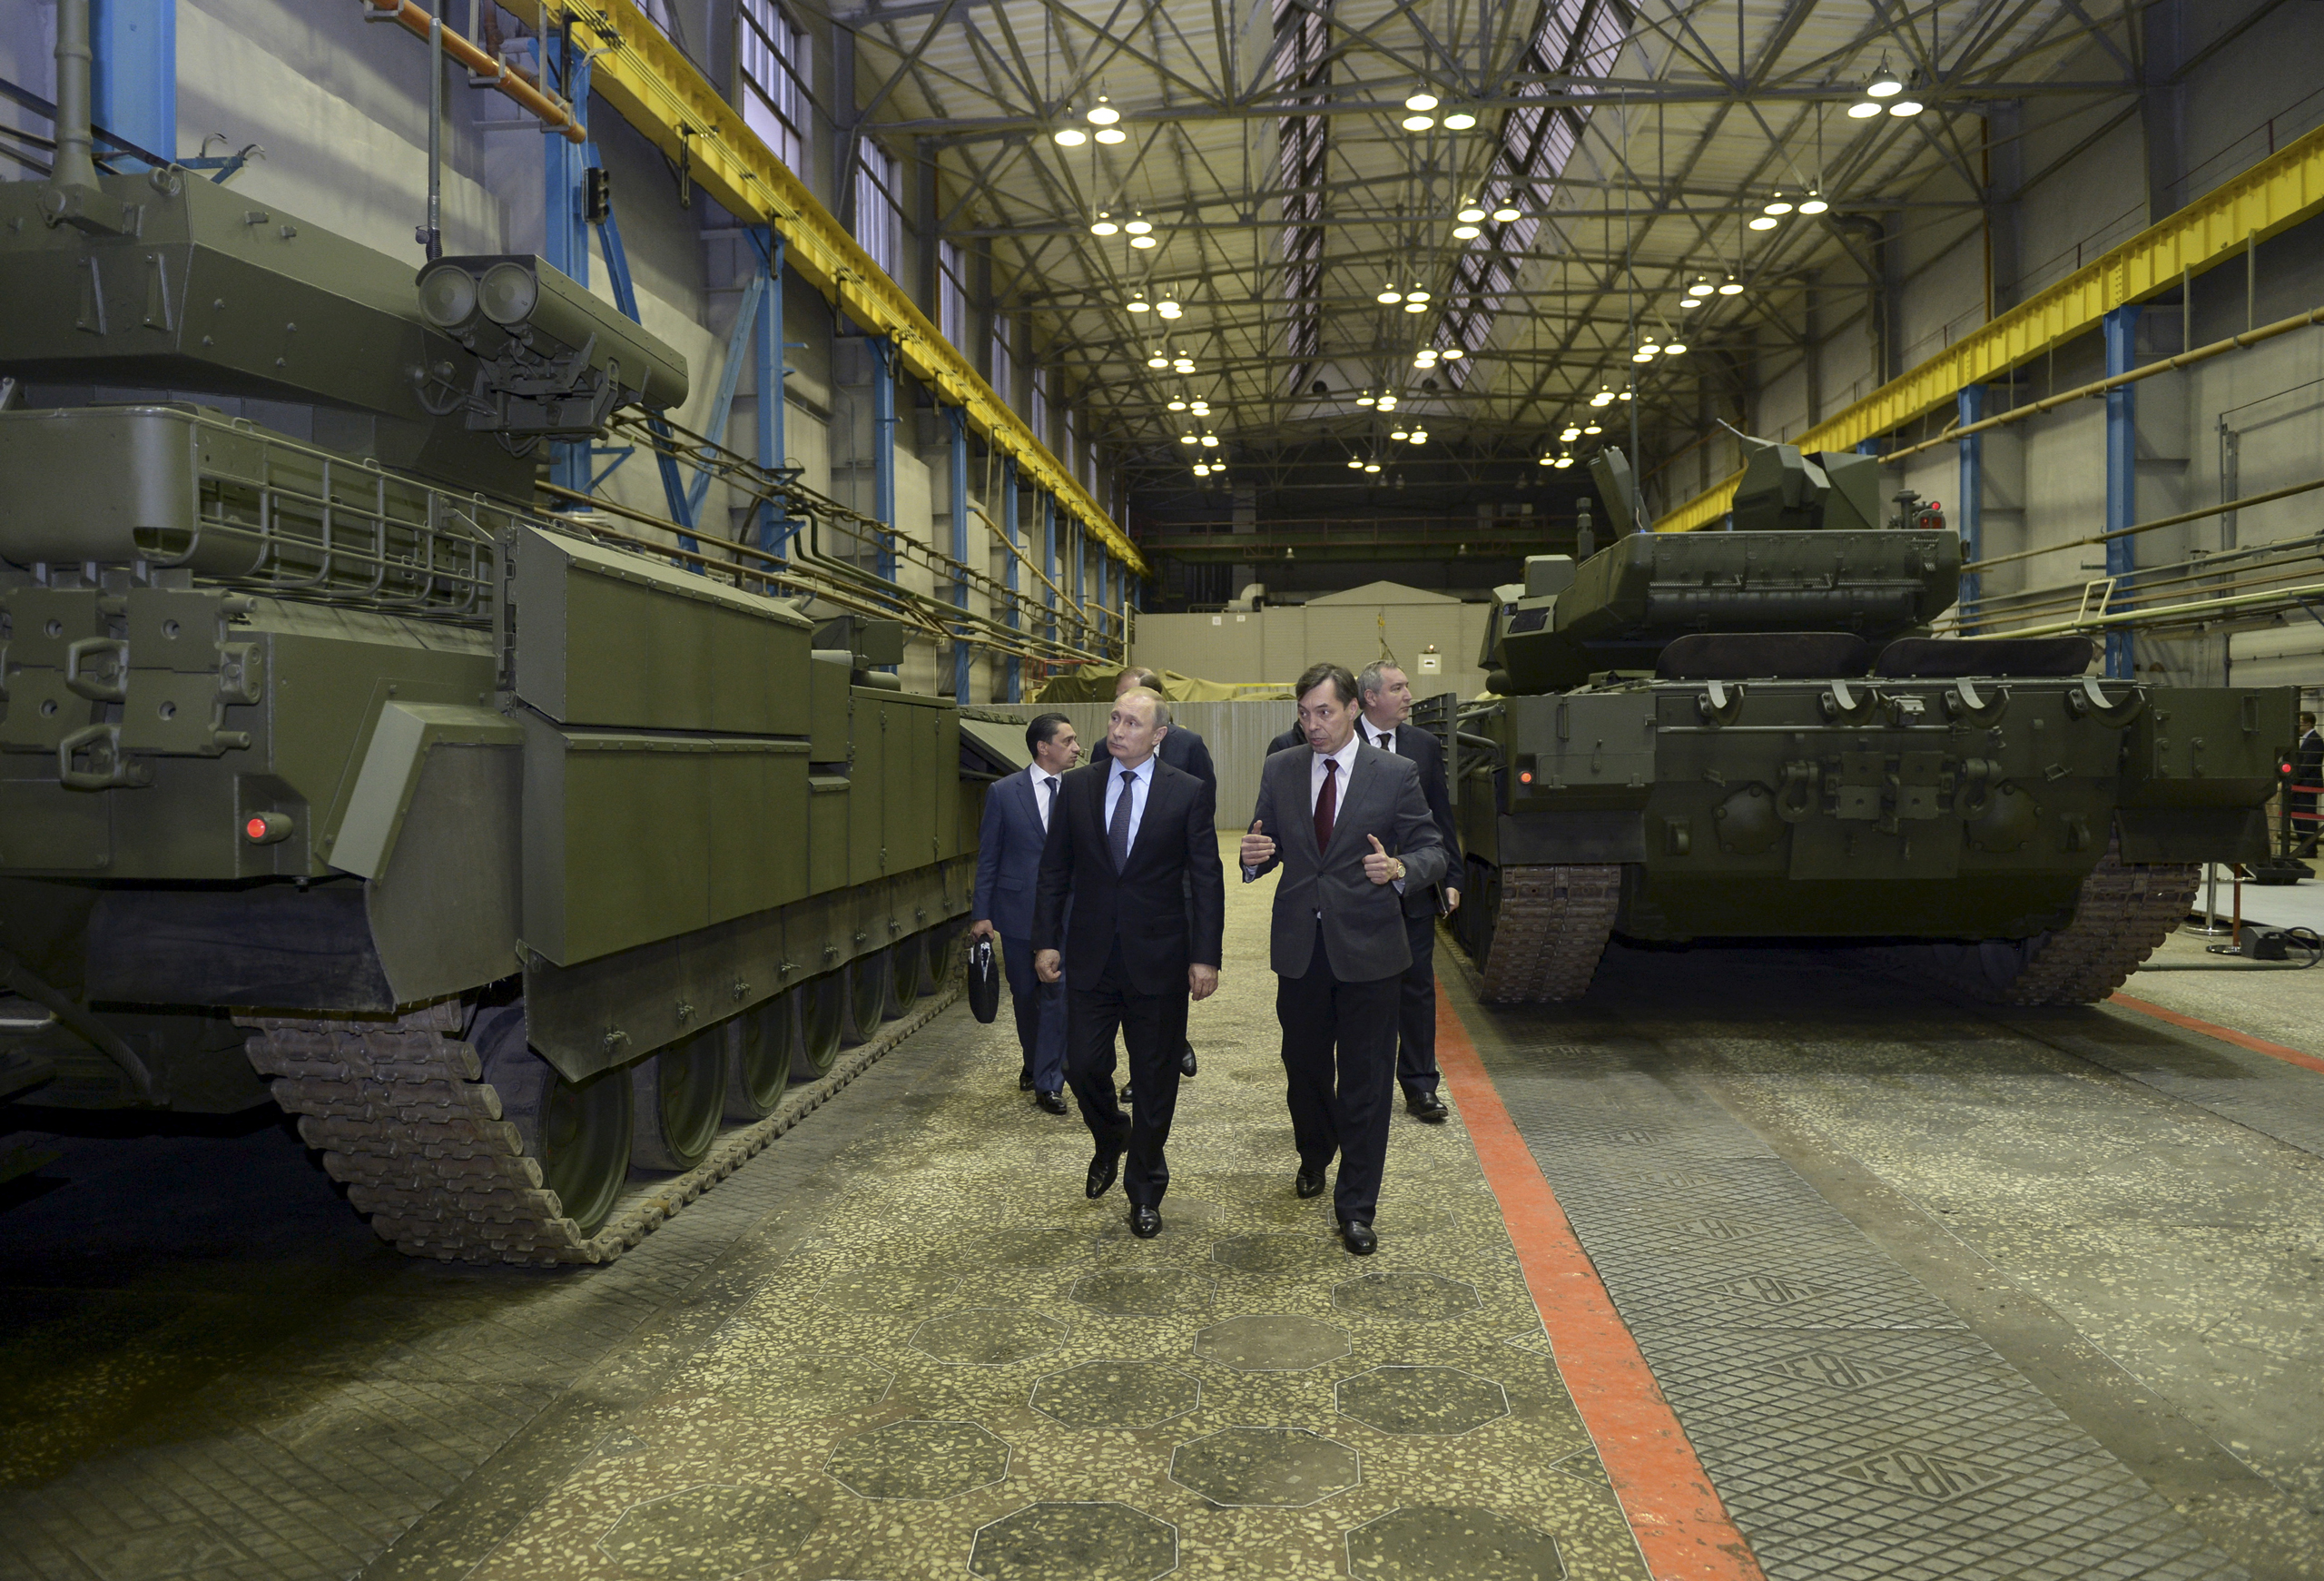 Russian President Vladimir Putin and Andrei Terlikov, the head of the Ural Transport Machine Building Design Bureau, walk by a Russian infantry fighting vehicle and a battle tank at the Uralvagonzavod factory in Nizhny Tagil, Russia, on Nov. 25, 2015.